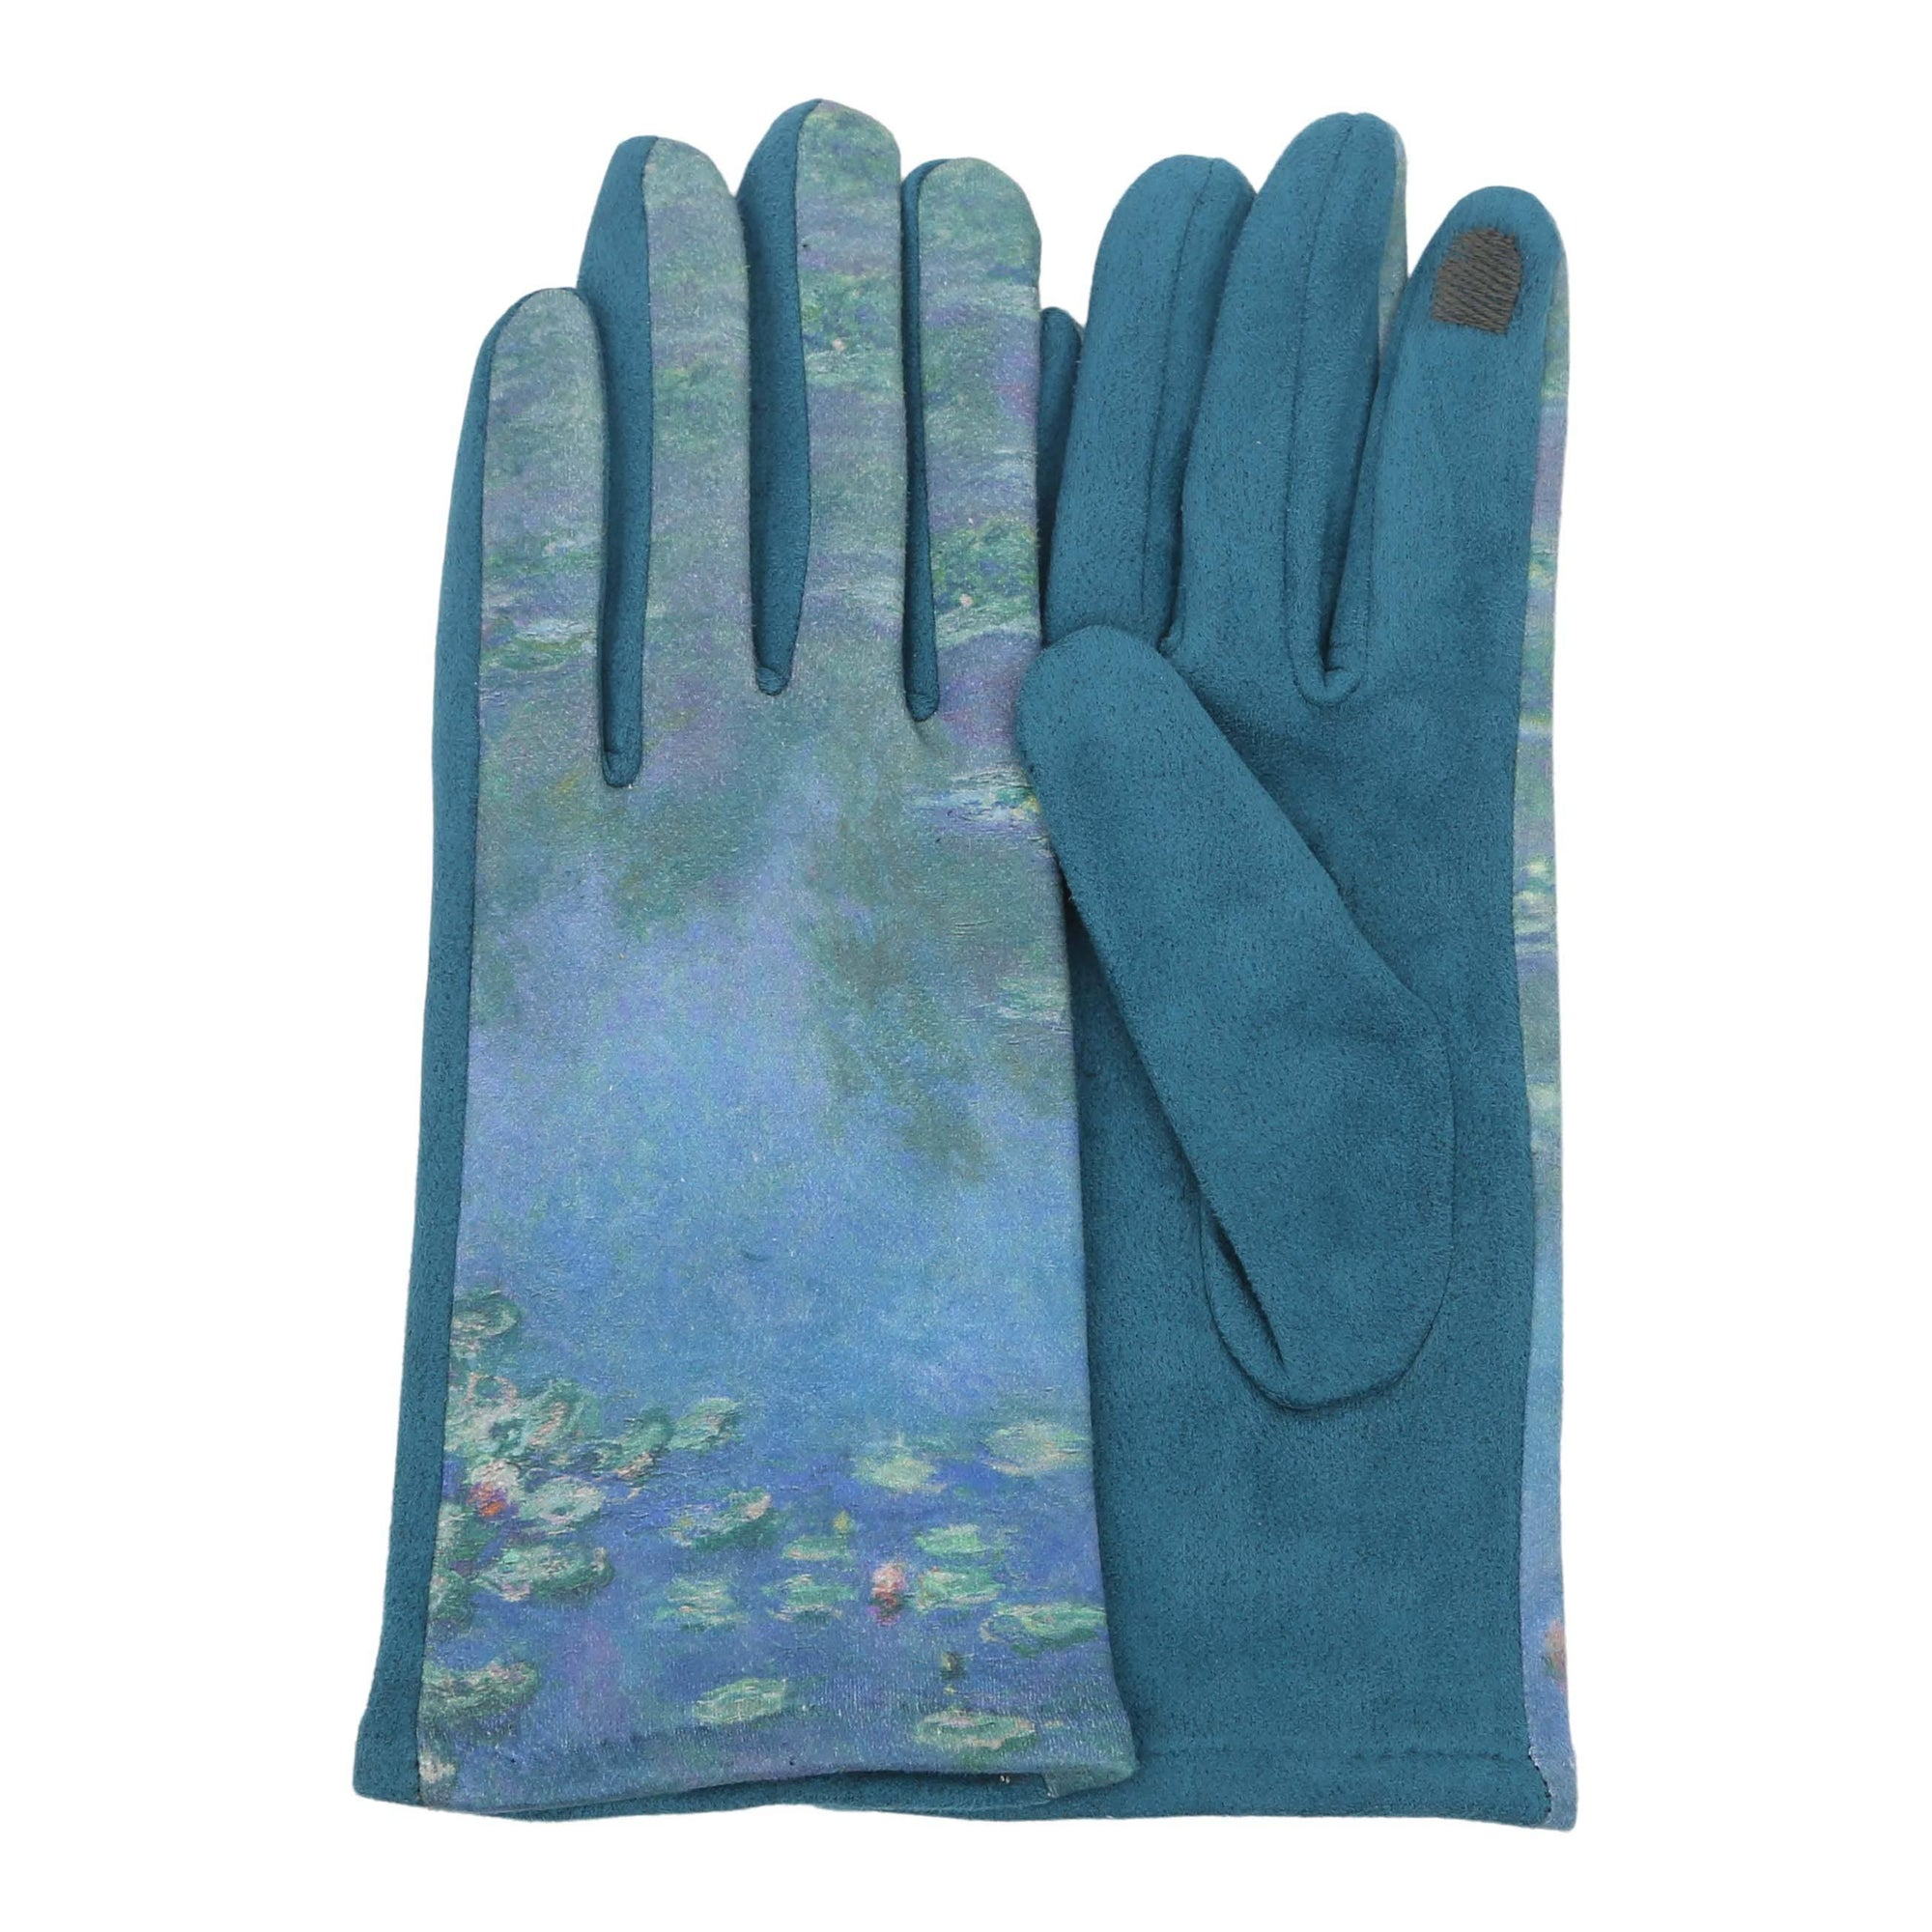 Pair of buttery-soft teal and multi-color Monet Waterlilies print texting gloves.